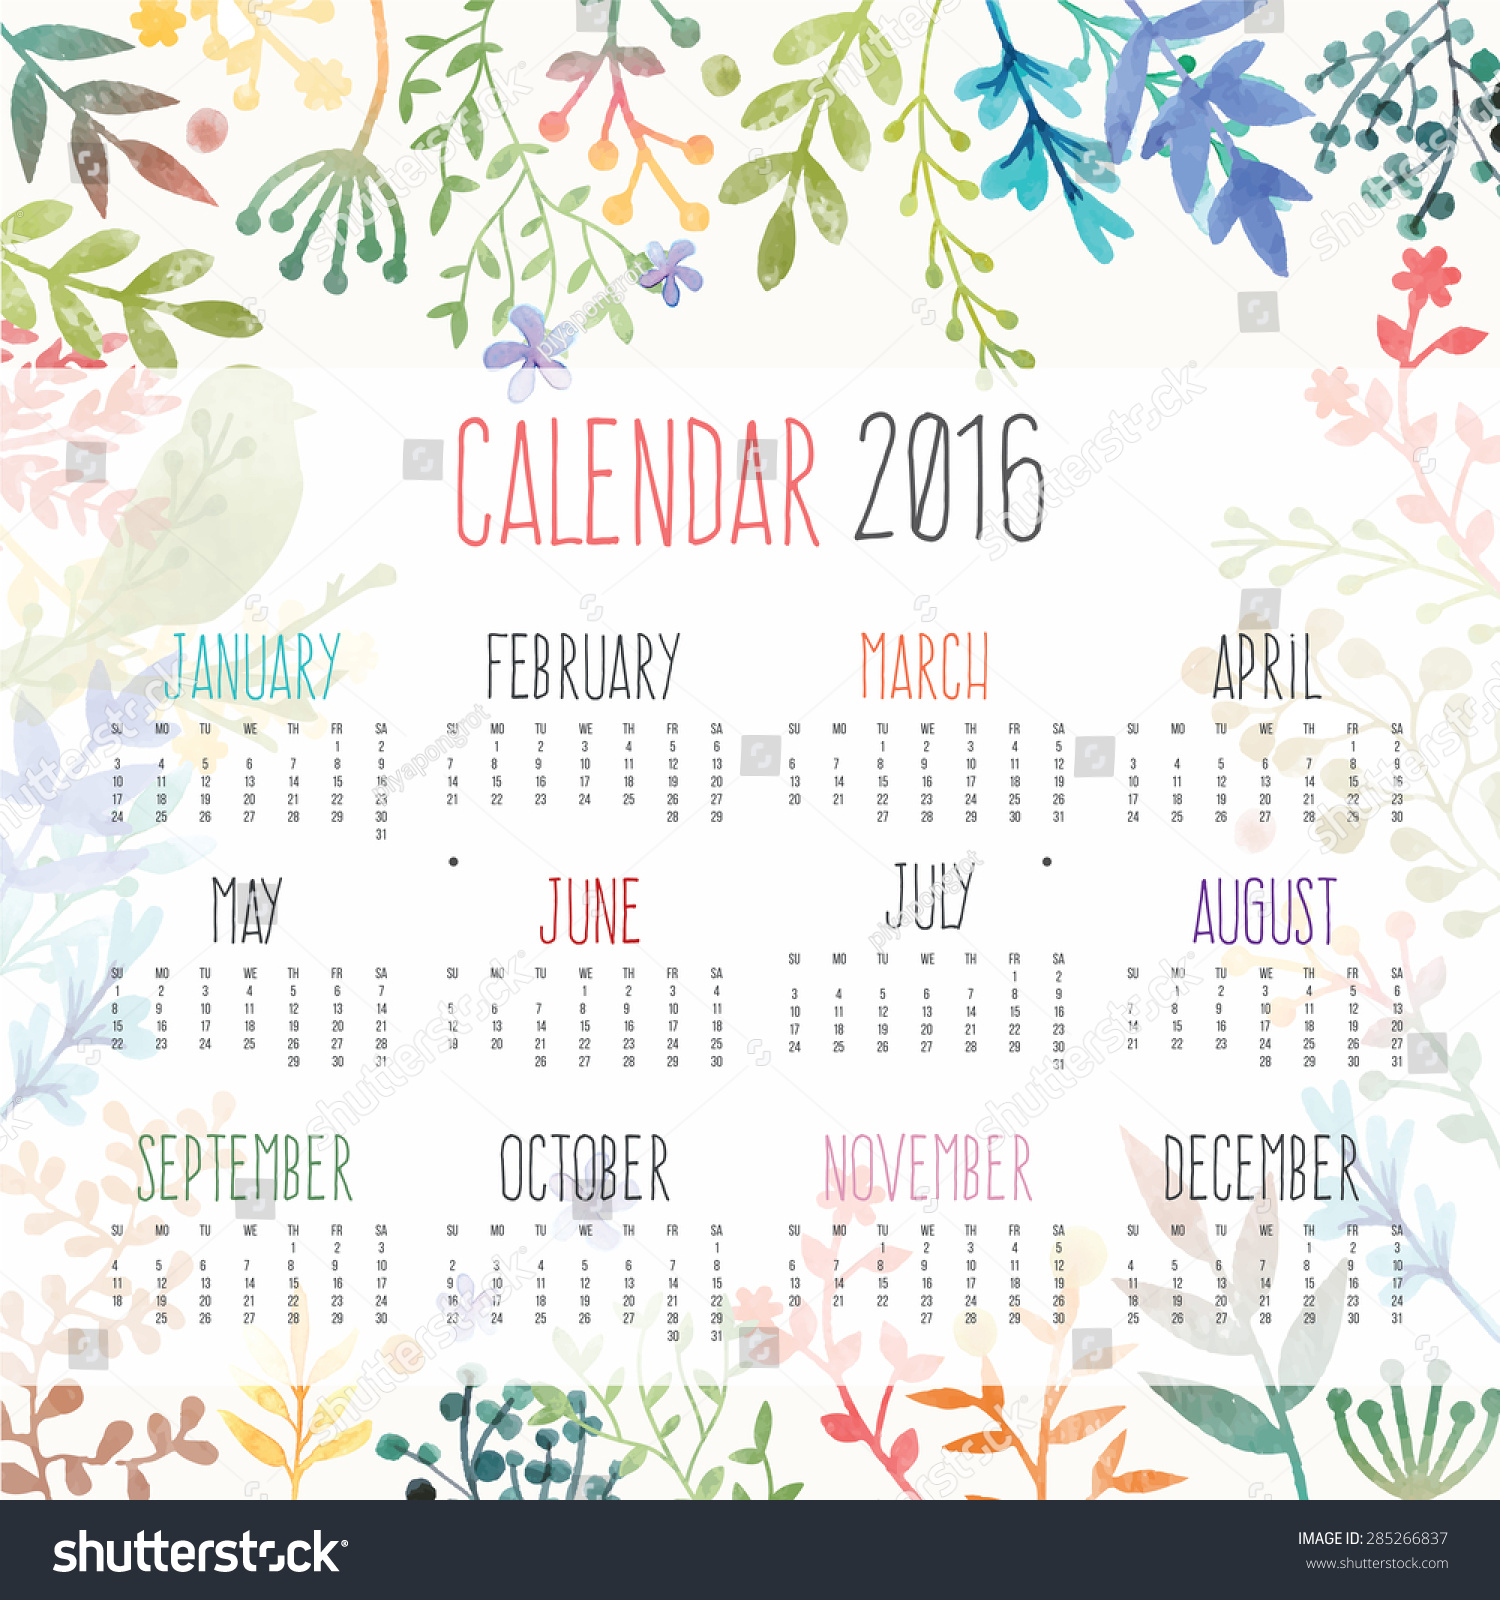 Calendar For 2016 With Flower Stock Vector Illustration 285266837 ...